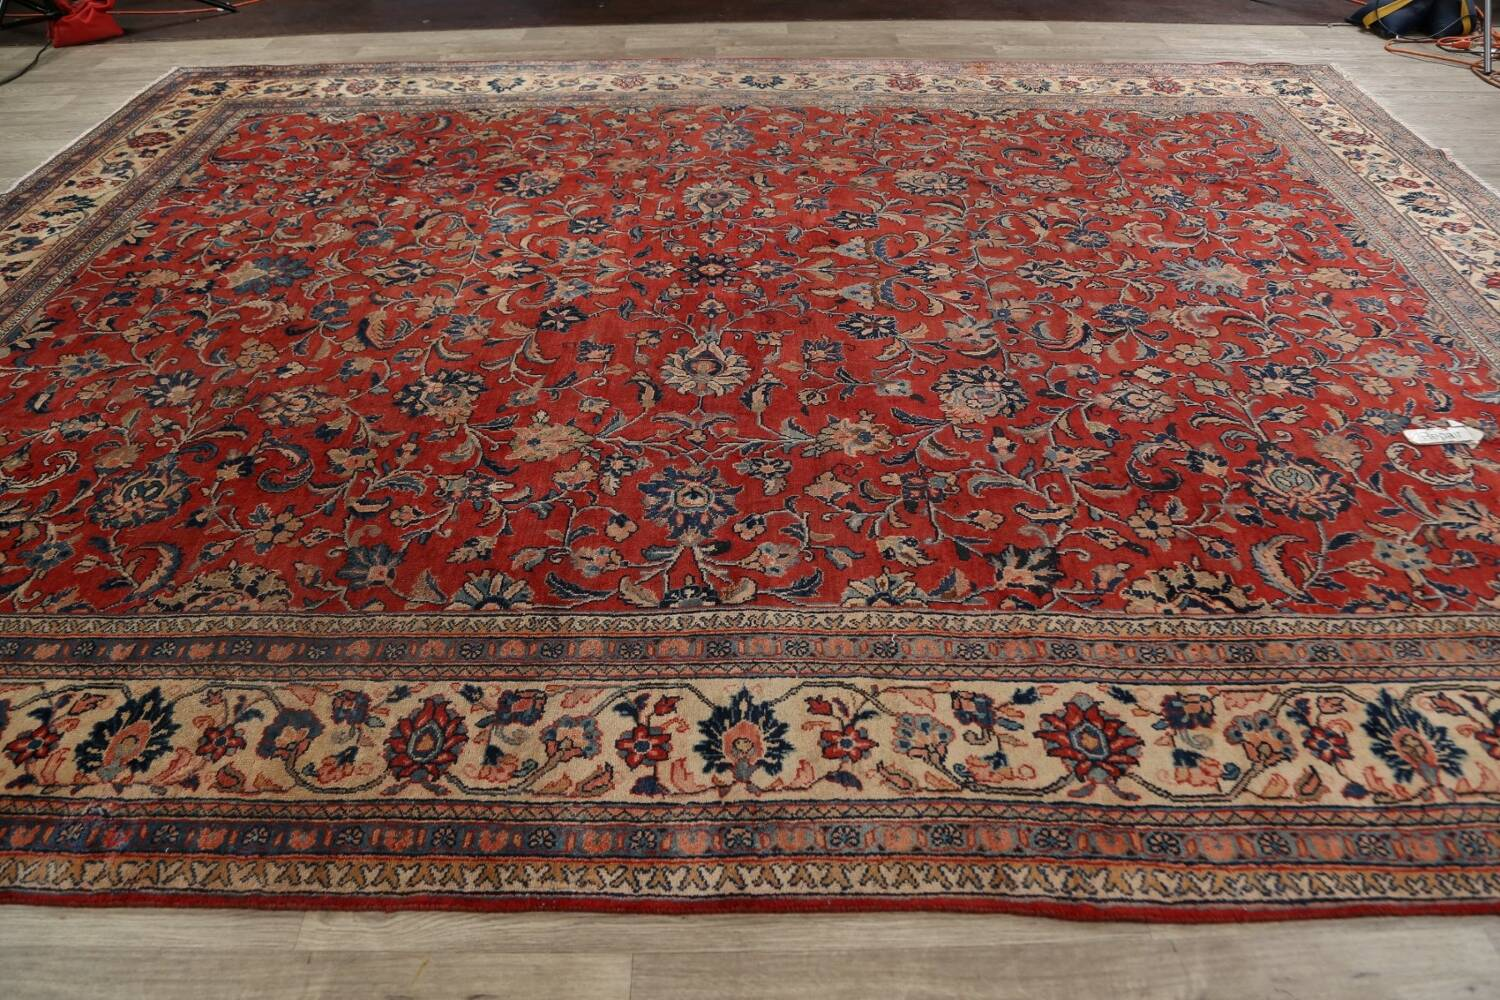 Antique Floral Mahal Persian Area Rug 10x14 image 16